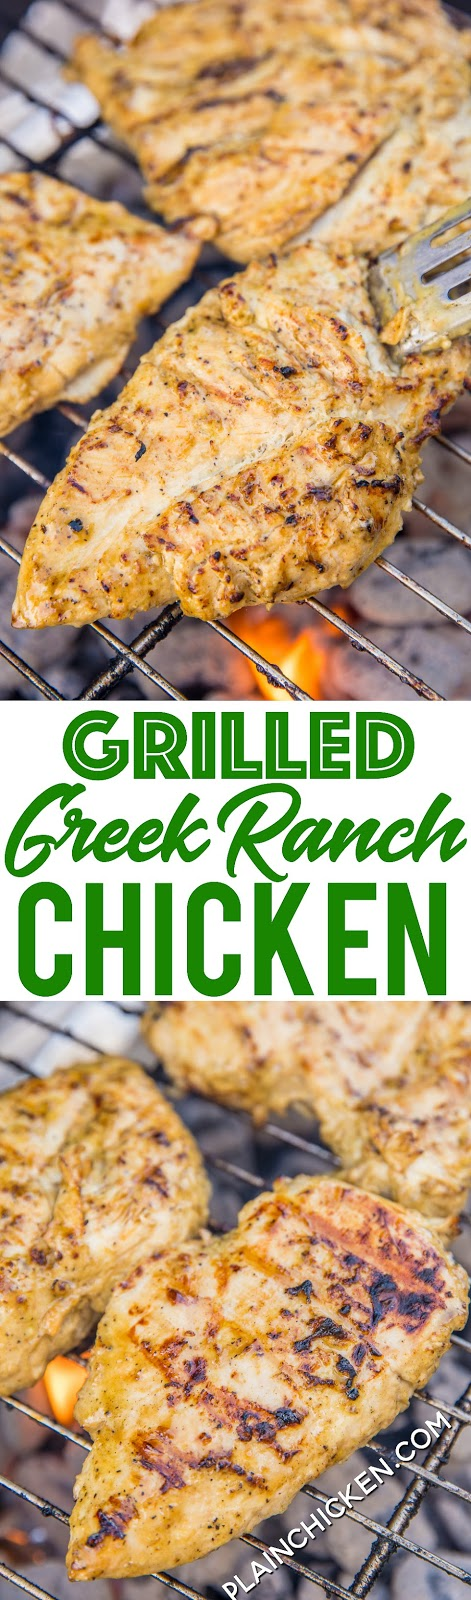 Grilled Greek Ranch Chicken - chicken marinated in Ranch dressing, olive oil, lemon juice, worcestershire sauce and Greek seasoning - grill up for THE BEST chicken you'll ever eat! We make this at least once a week. Double up the recipe for leftovers! It is to-die-for delicious!! #grilling #chicken #grilledchicken #chickenrecipe